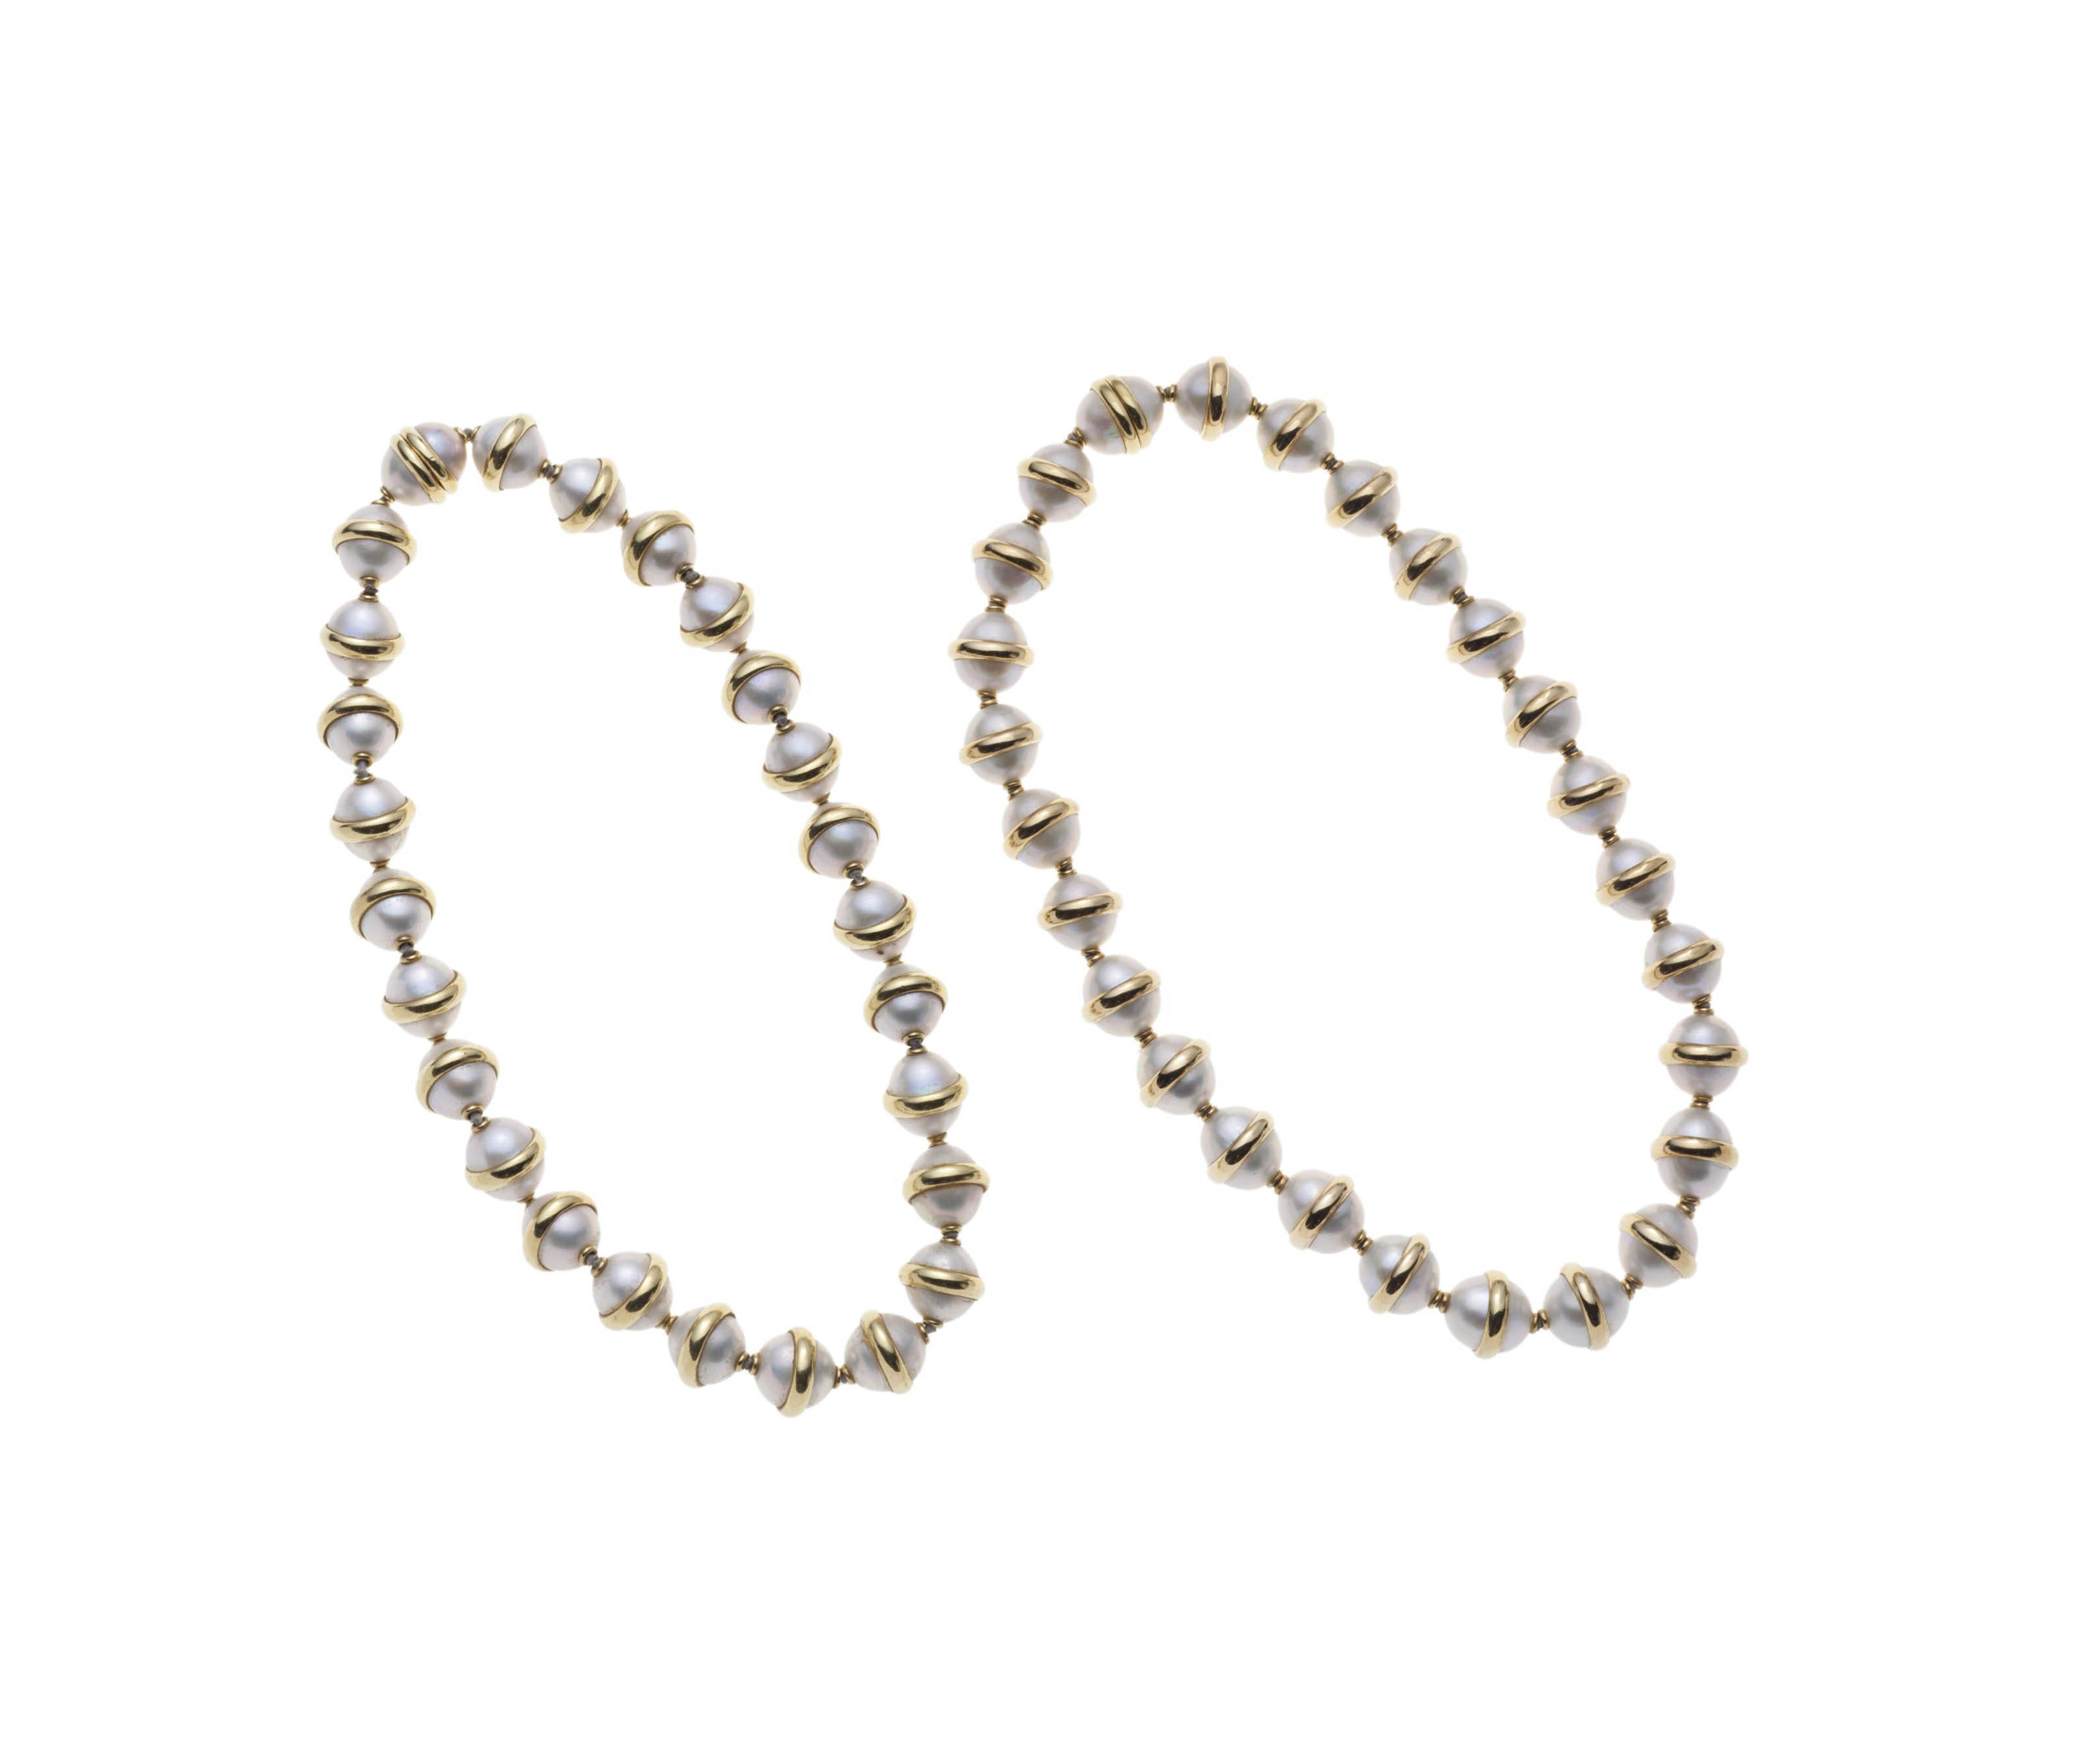 A PAIR OF CULTURED PEARL NECKLACES, BY PALOMA PICASSO, TIFFANY & CO.